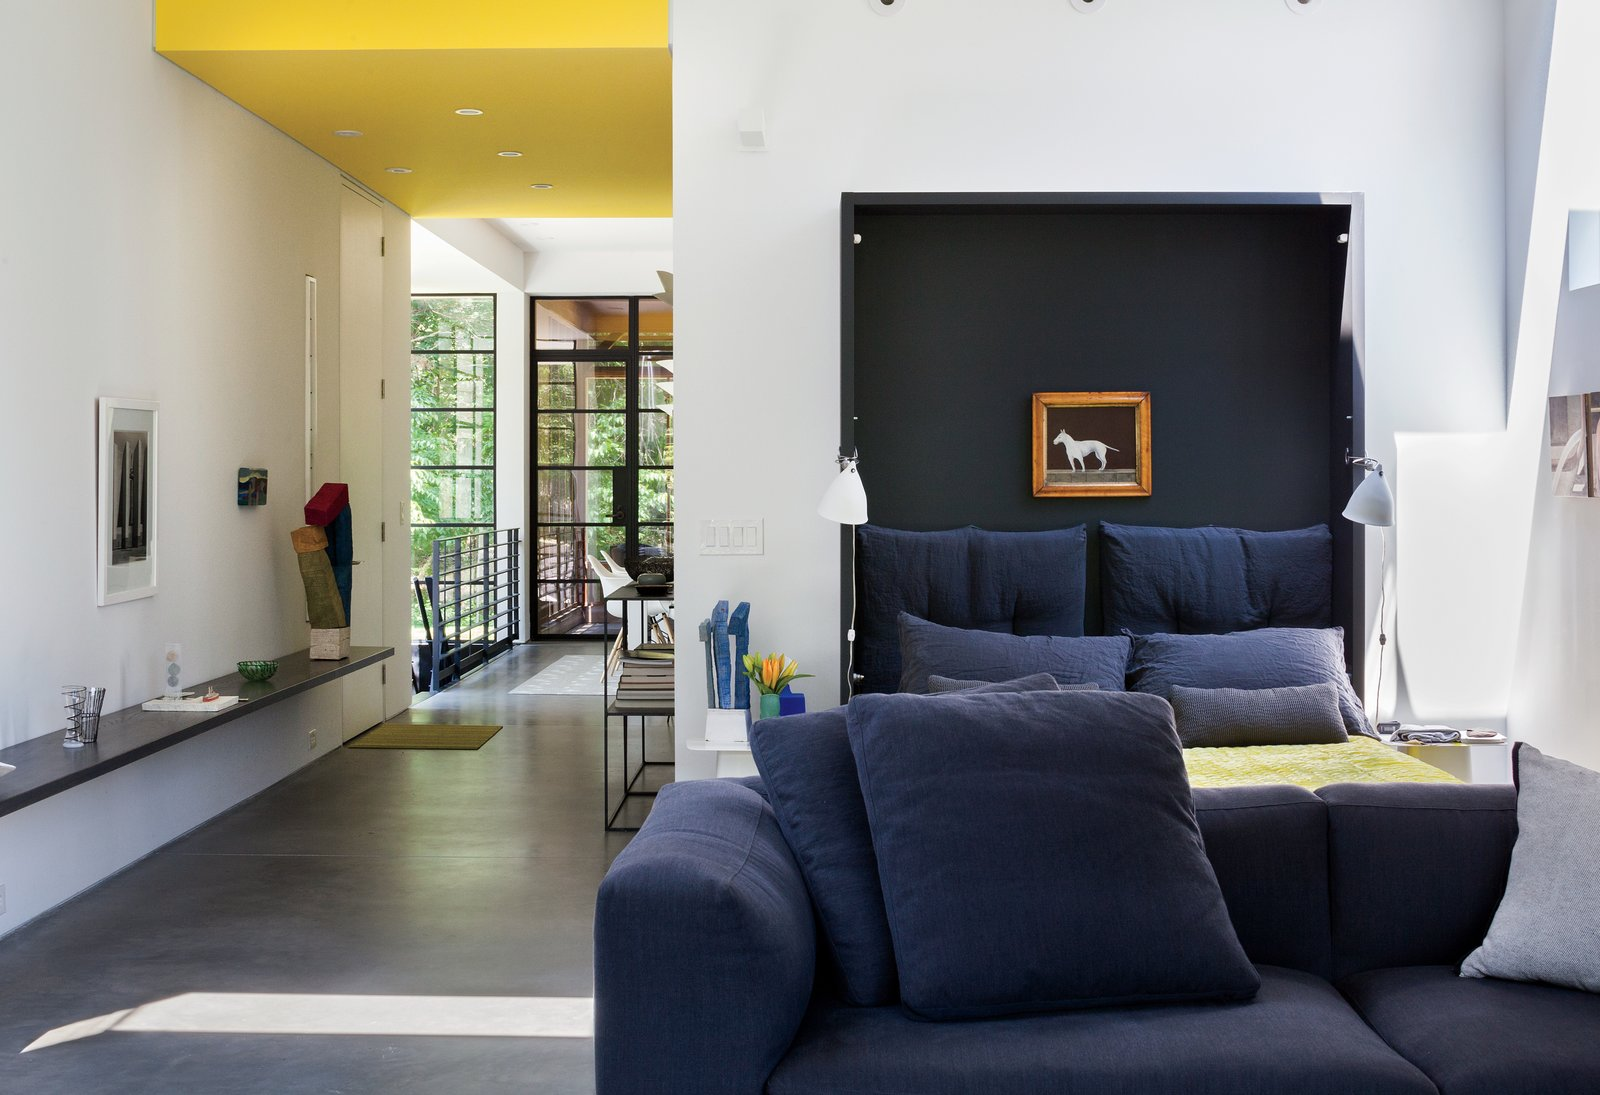 When folded down, deep navy-blue cushions give the effect of a lush headboard. While the home does not yet have a proper master bedroom, the couple plans to create an addition sometime next year.